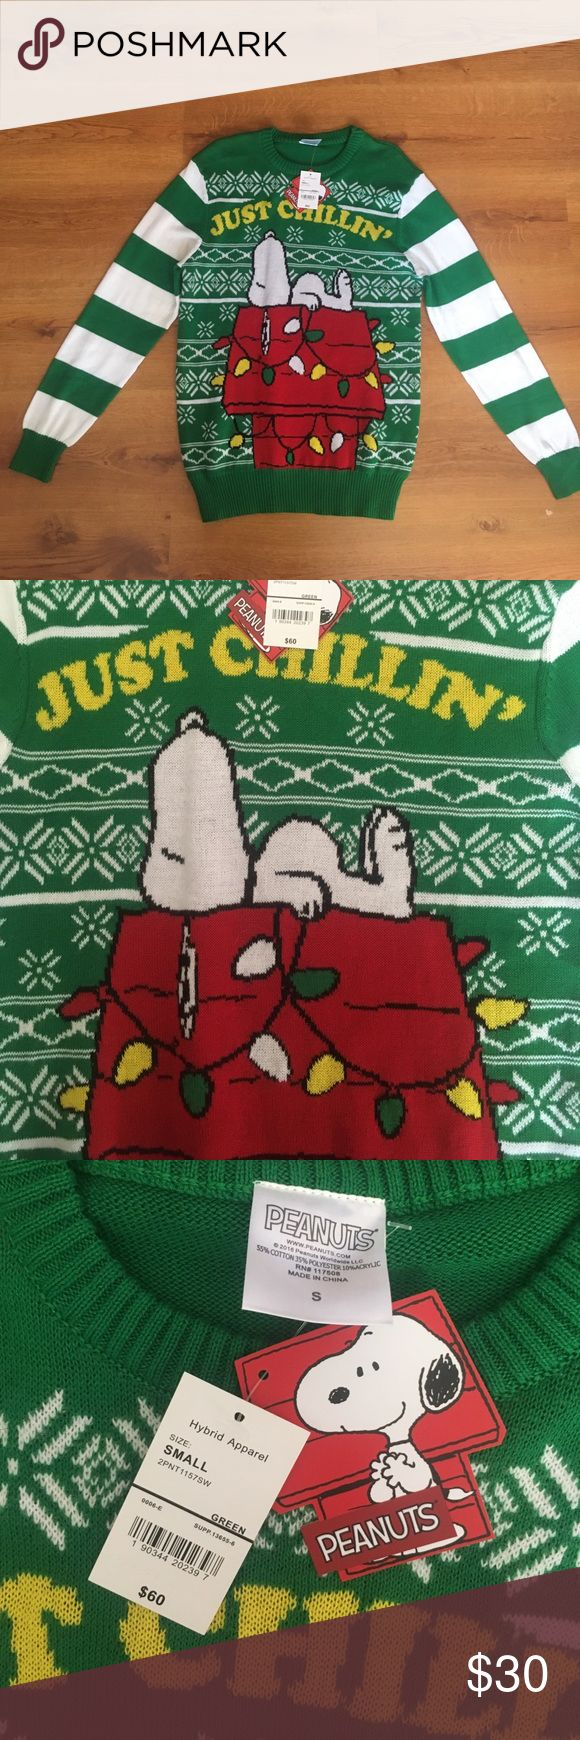 """NWT Peanuts ugly Christmas cardigan This sweater screams """"ugly Christmas sweater party"""" it was originally purchased for just that! Never worn, new with tags, this sweater is a must for both a peanuts lover and a lover of ugly Christmas sweaters! hybrid apparel Sweaters Cardigans"""